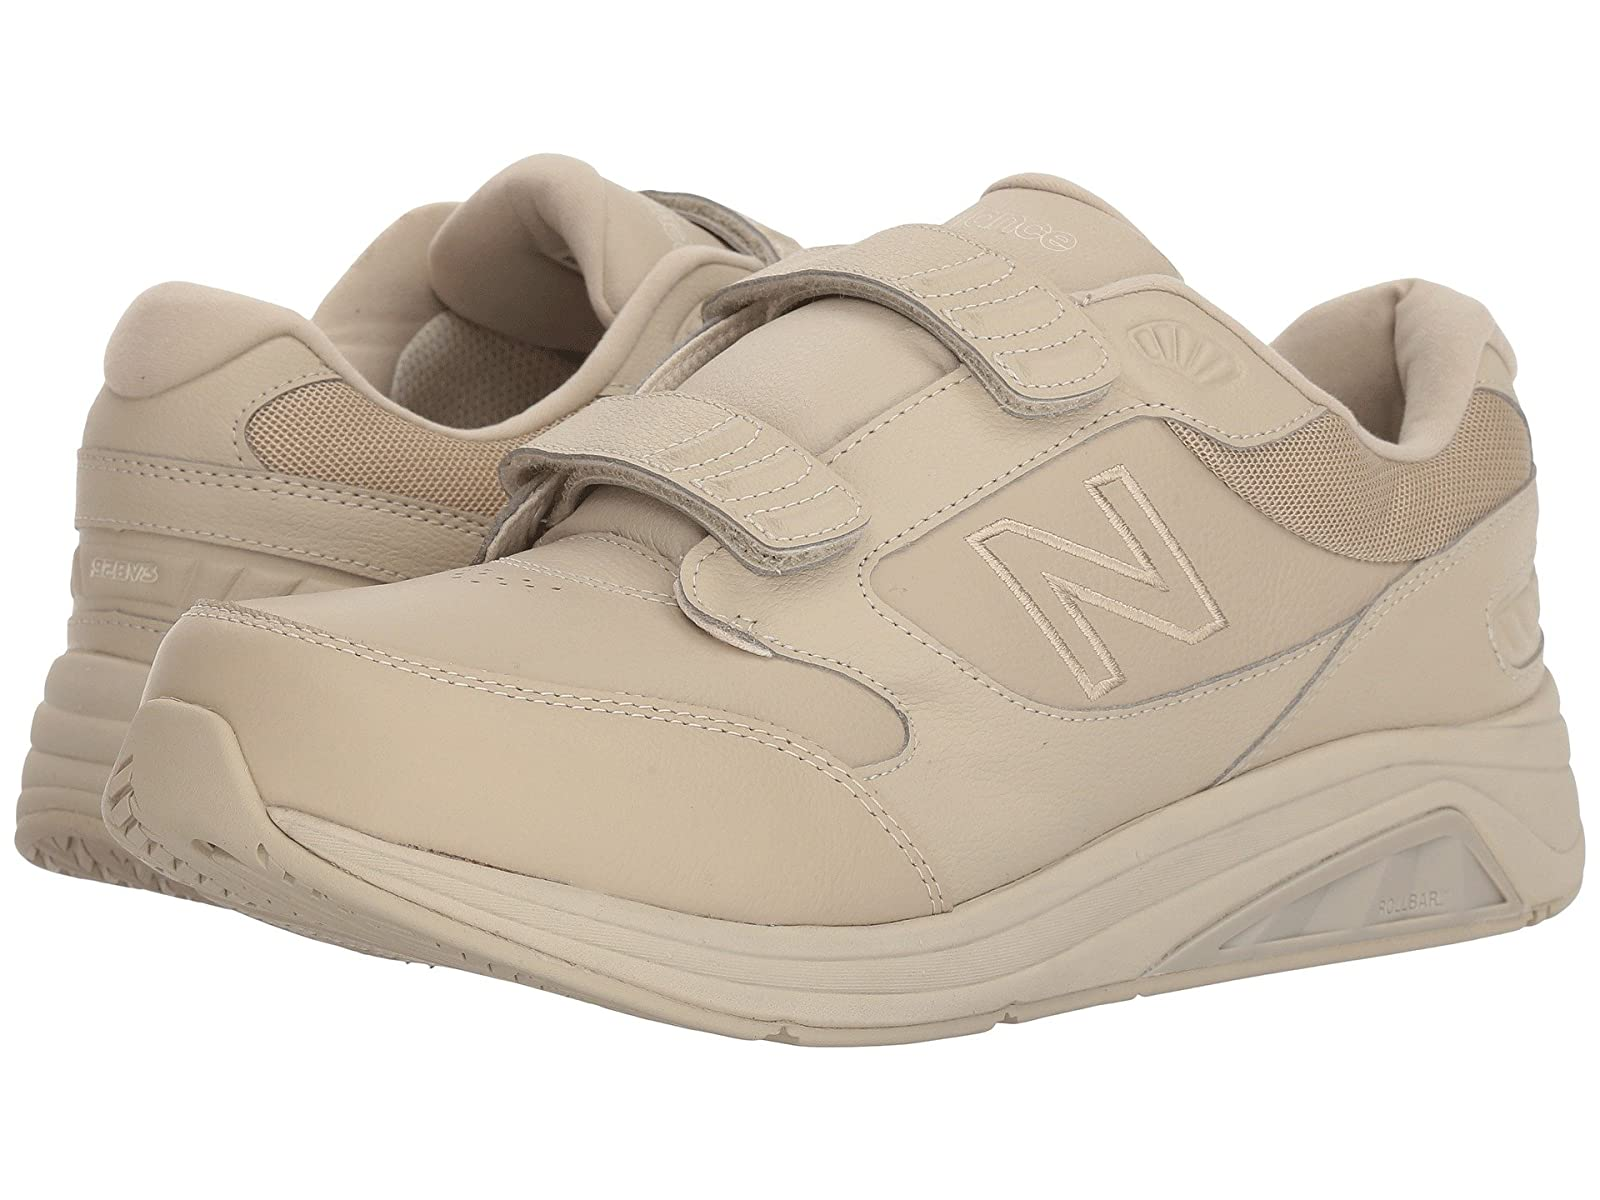 New Balance MW928Hv3Atmospheric grades have affordable shoes